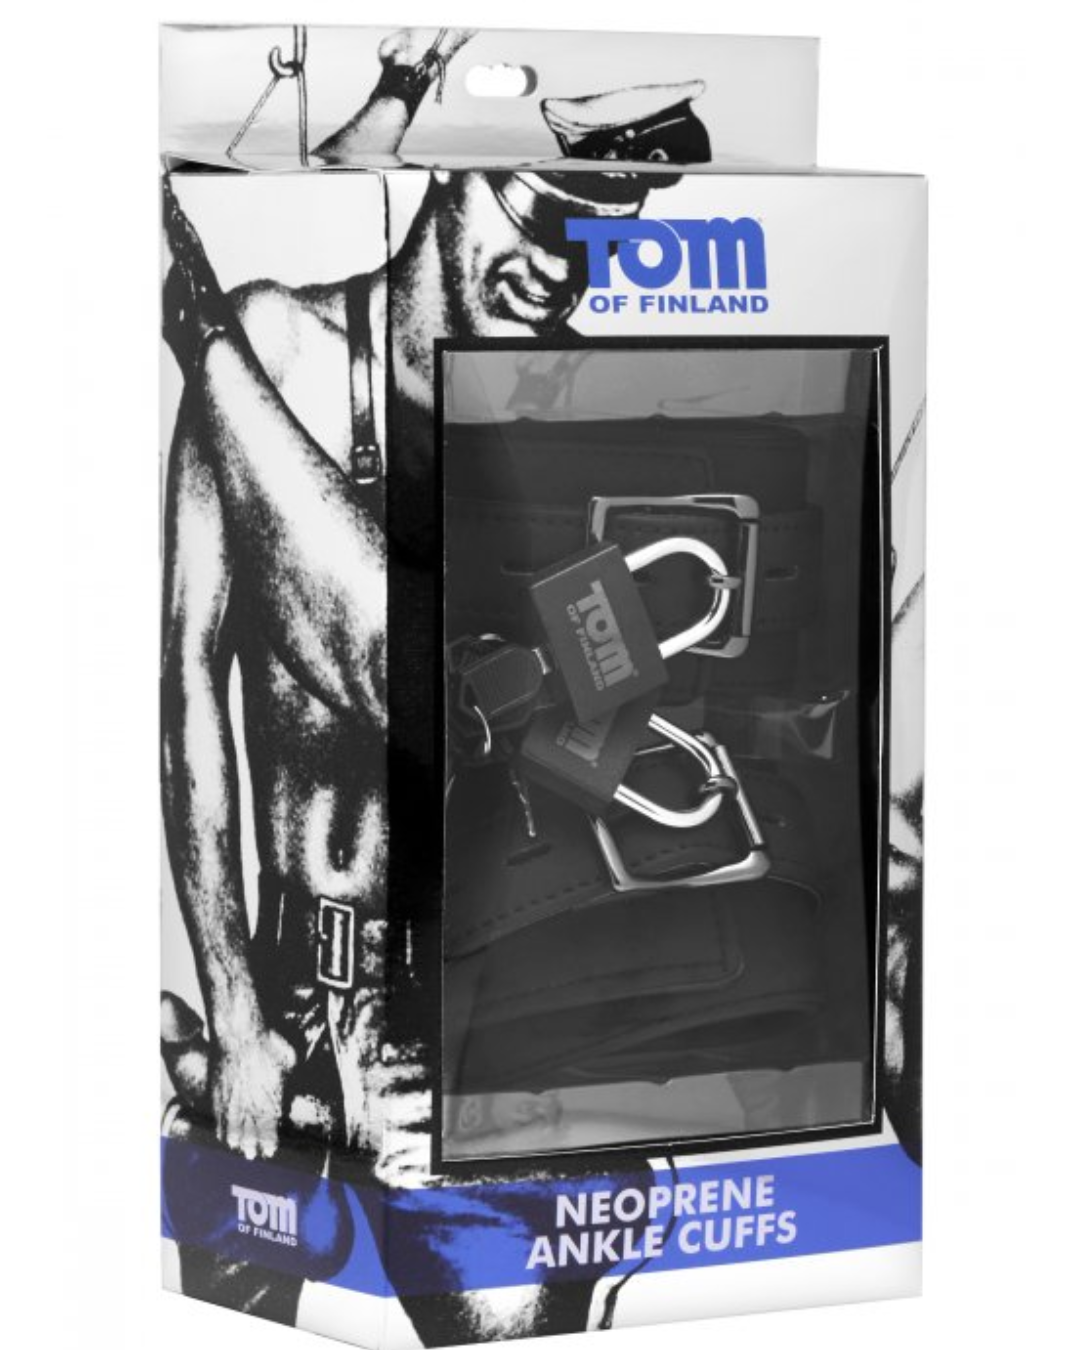 Tom of Finland Neoprene Ankle Cuffs with Locks package